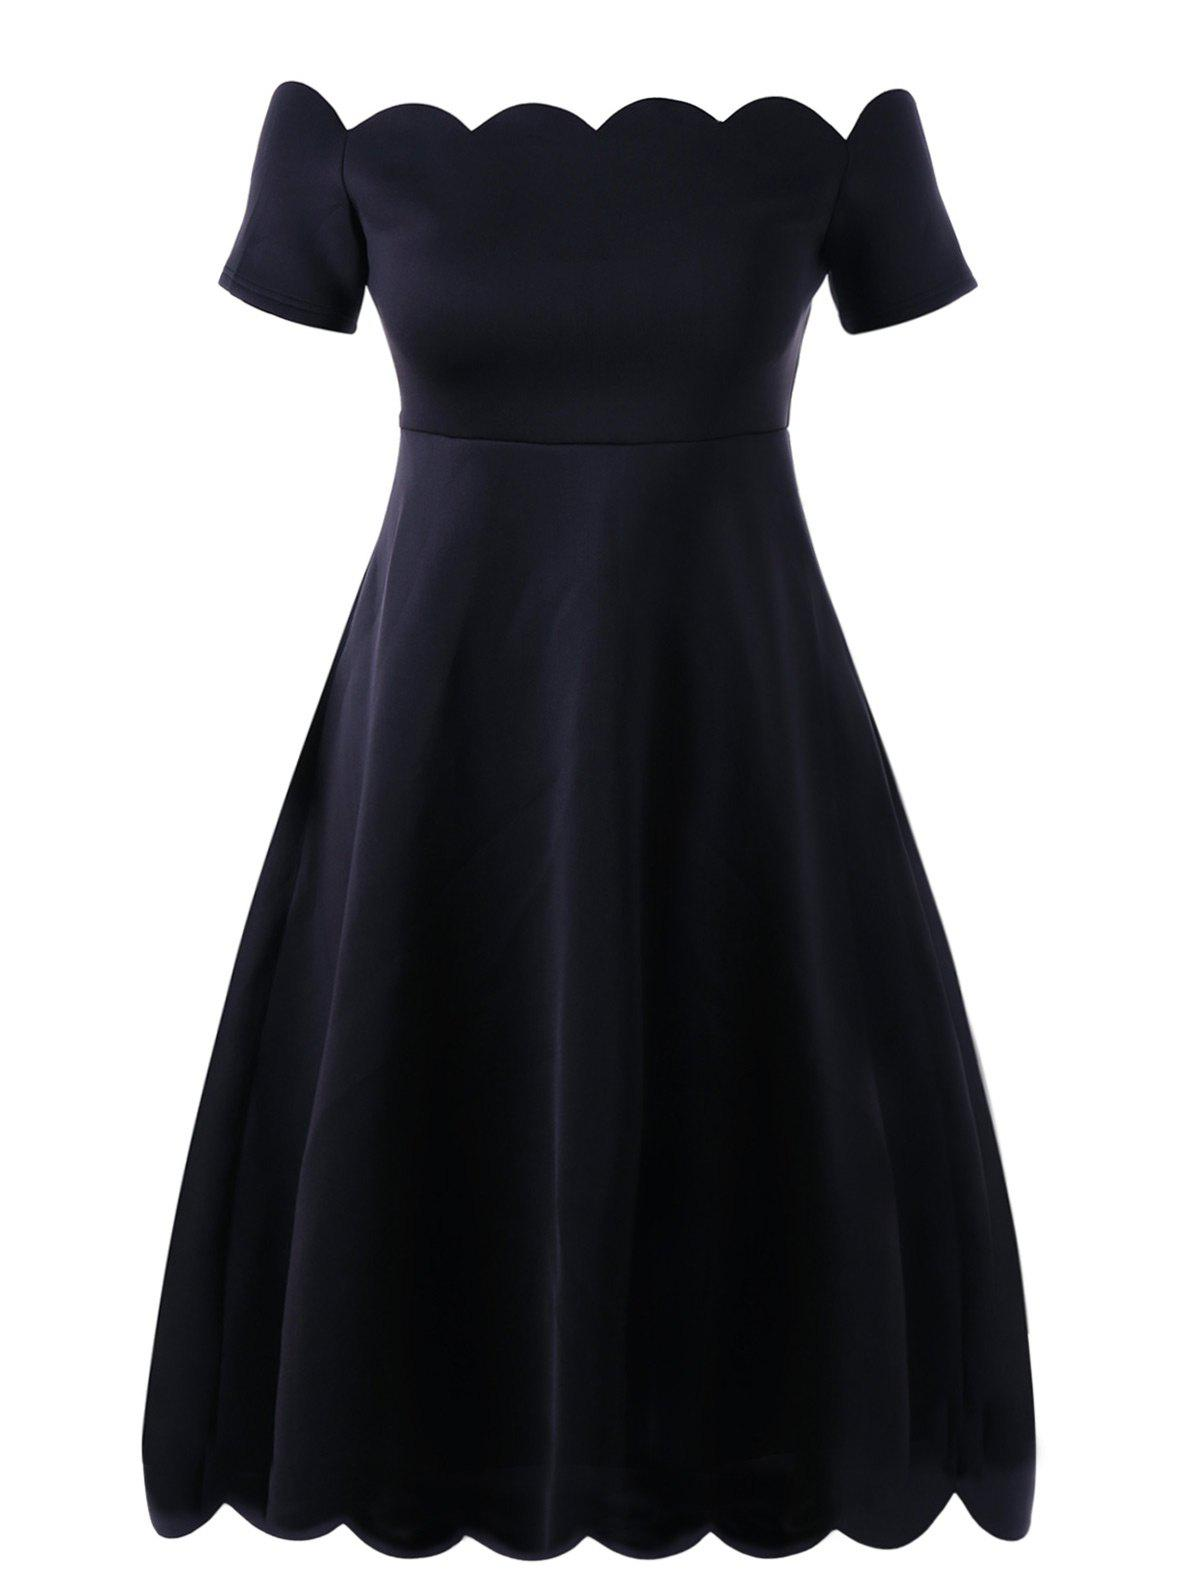 Off Shoulder Scalloped Plus Size Formal DressWOMEN<br><br>Size: 5XL; Color: BLACK; Style: Vintage; Material: Polyester,Spandex; Silhouette: A-Line; Dresses Length: Knee-Length; Neckline: Off The Shoulder; Sleeve Length: Short Sleeves; Pattern Type: Solid; With Belt: No; Season: Spring,Summer; Weight: 0.6880kg; Package Contents: 1 x Dress;